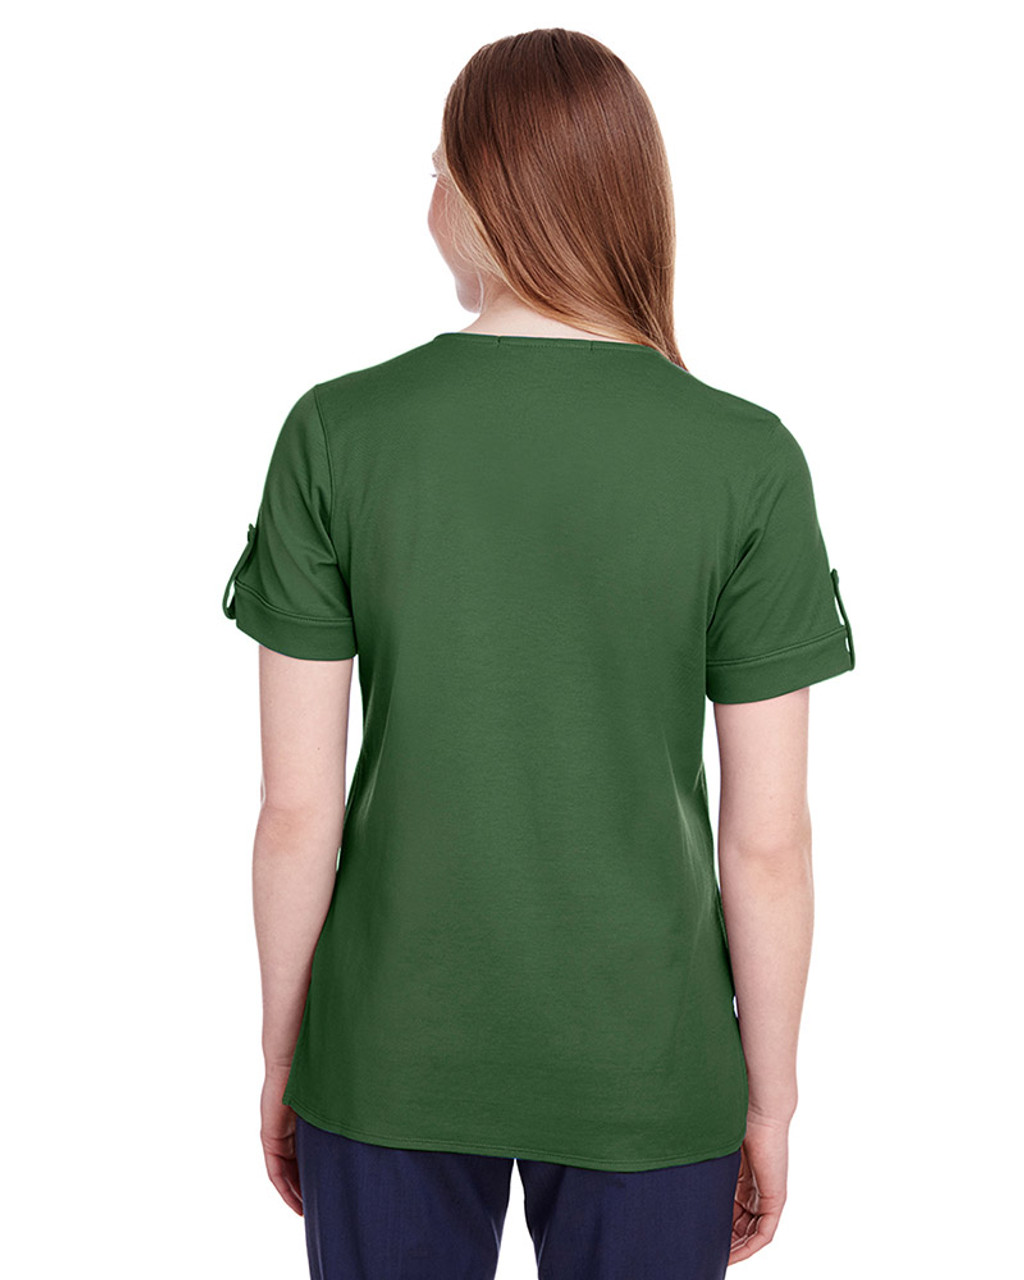 Forest - back, DG20WB Devon & Jones Ladies' CrownLux Performance™ Plaited Rolled-Sleeve Top | Blankclothing.ca